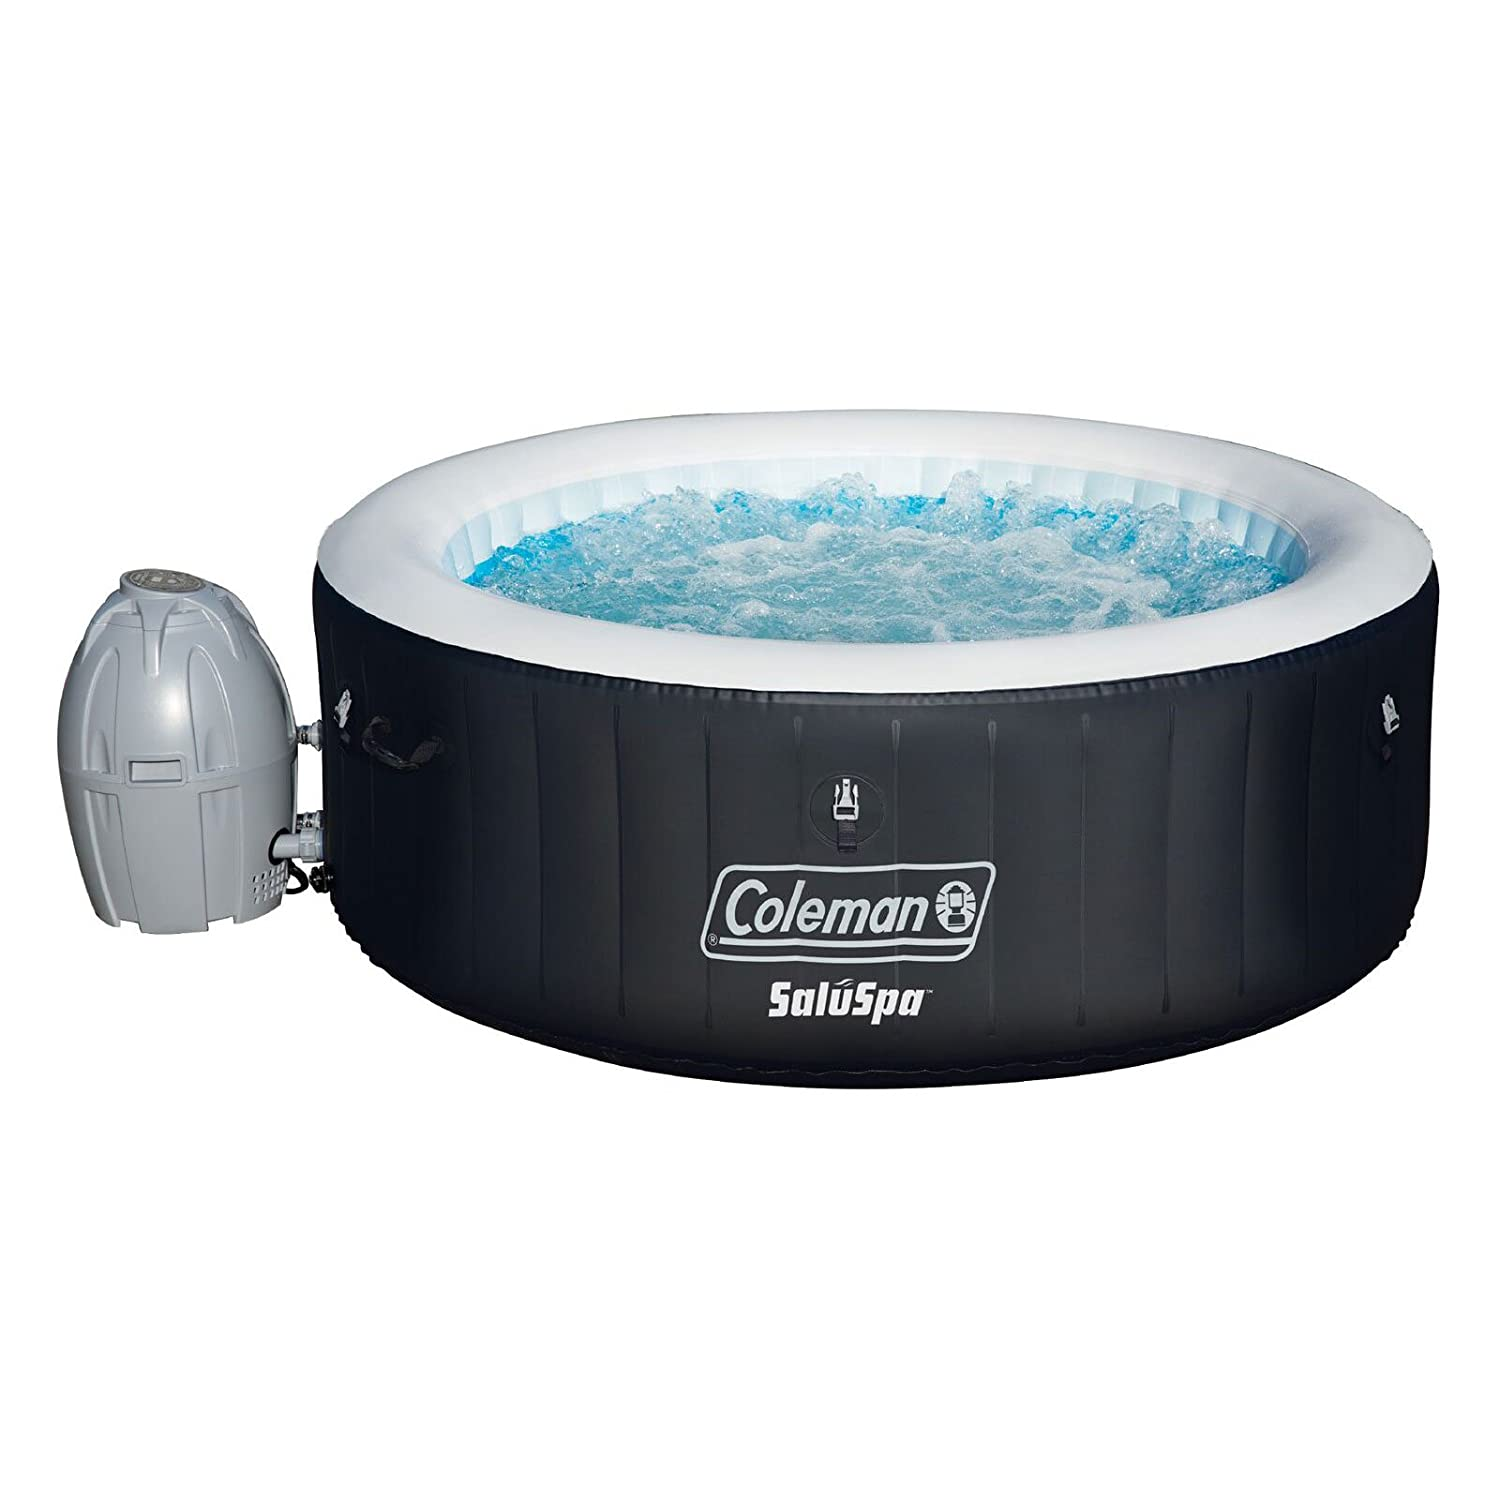 Hot Tub Hot Tubs Inflatable Hot Tub Portable Hot Tubs Spa